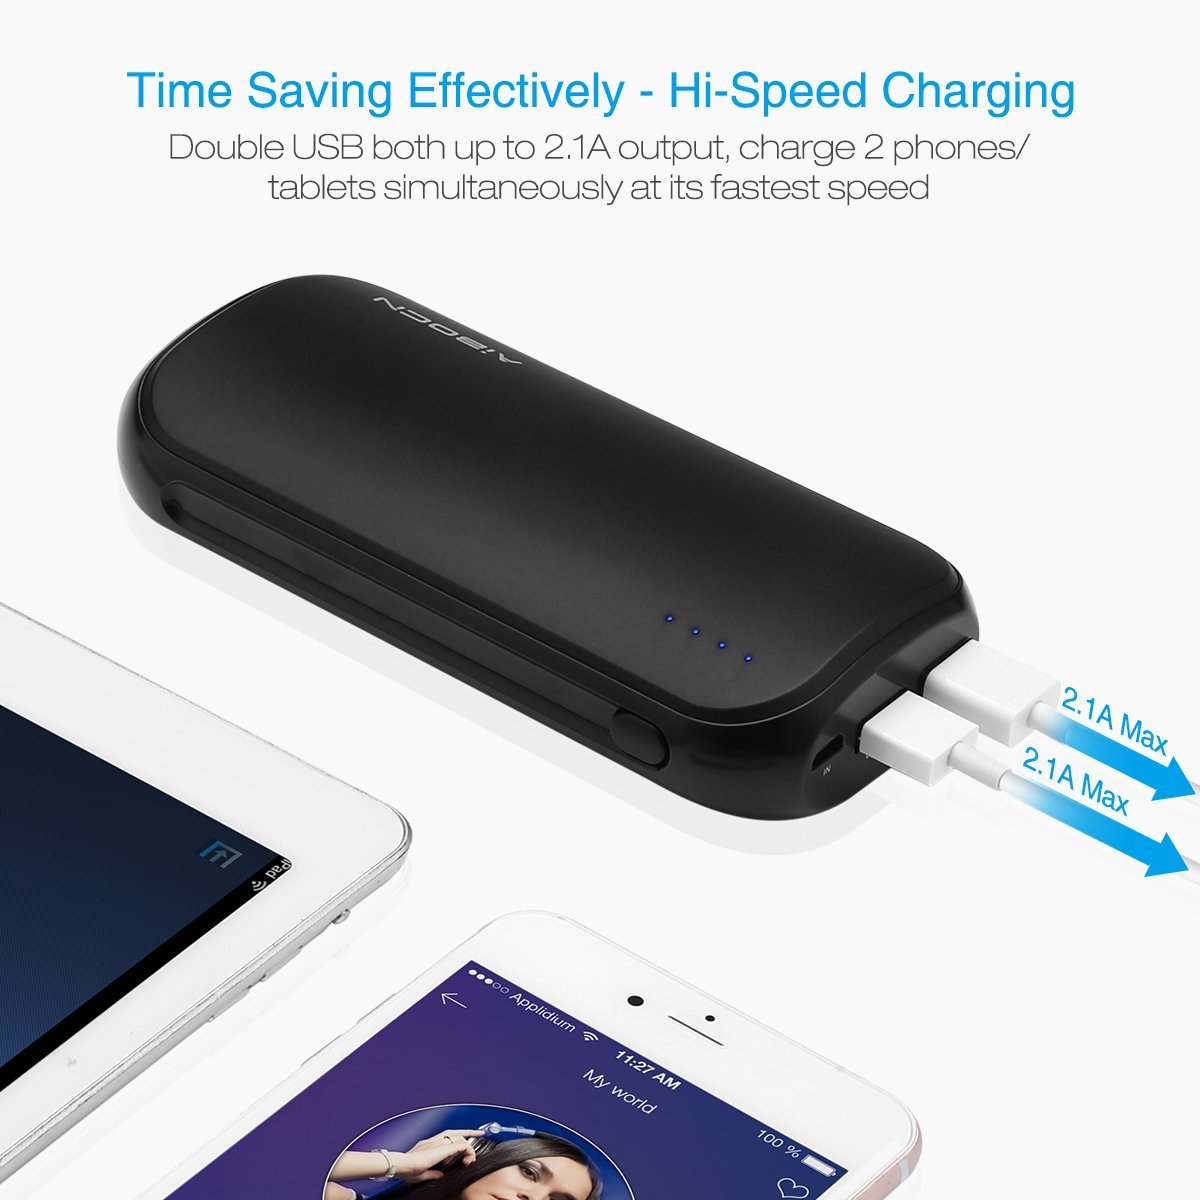 Aibocn Power Bank 16000mAh Portable External Charger with Fast Charging  Technology for iPhone Samsung Galaxy Tablets and More, Black - CHARGE WITH